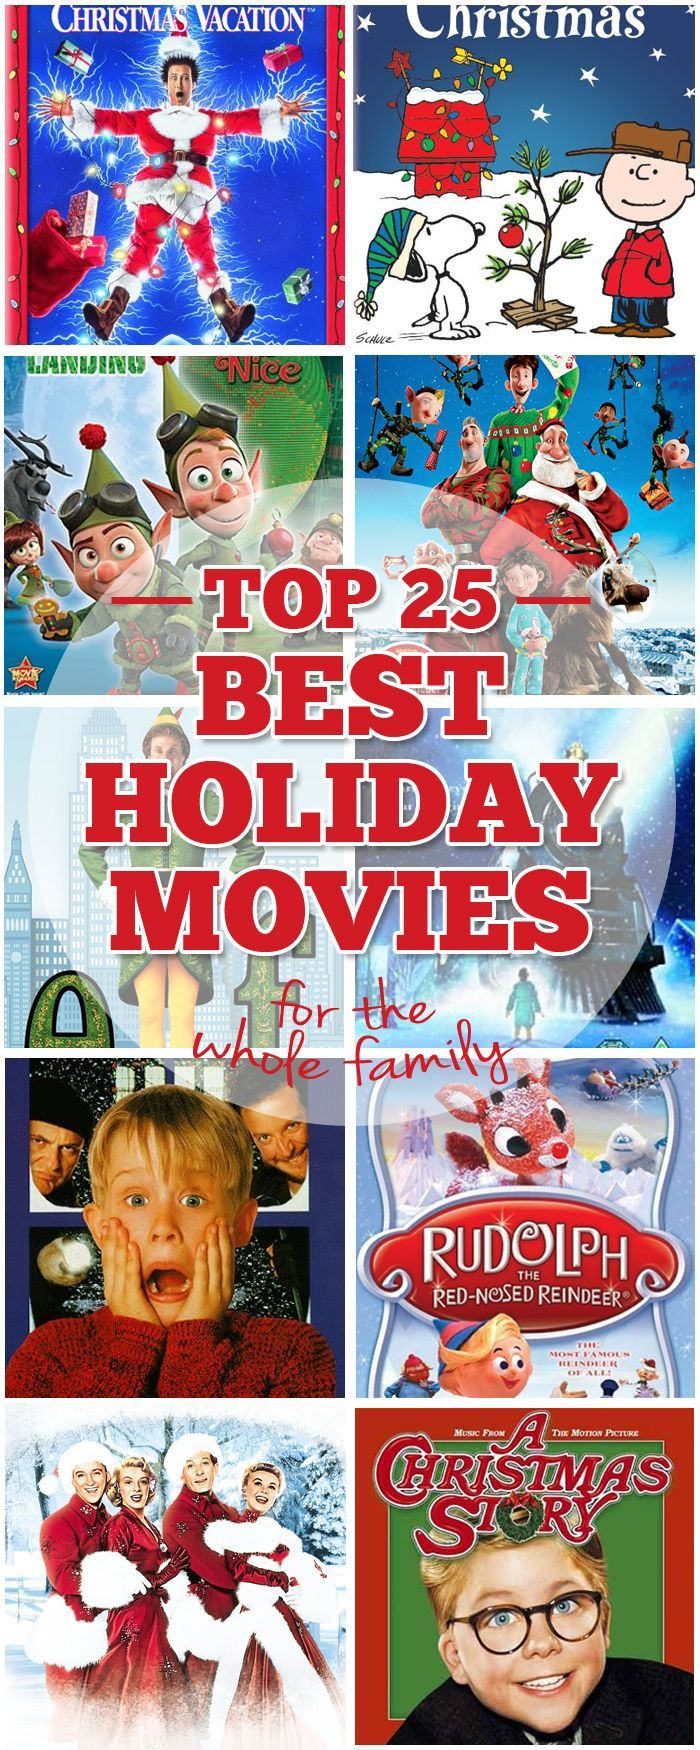 Top 25 Best Holiday Movies for the Whole Family